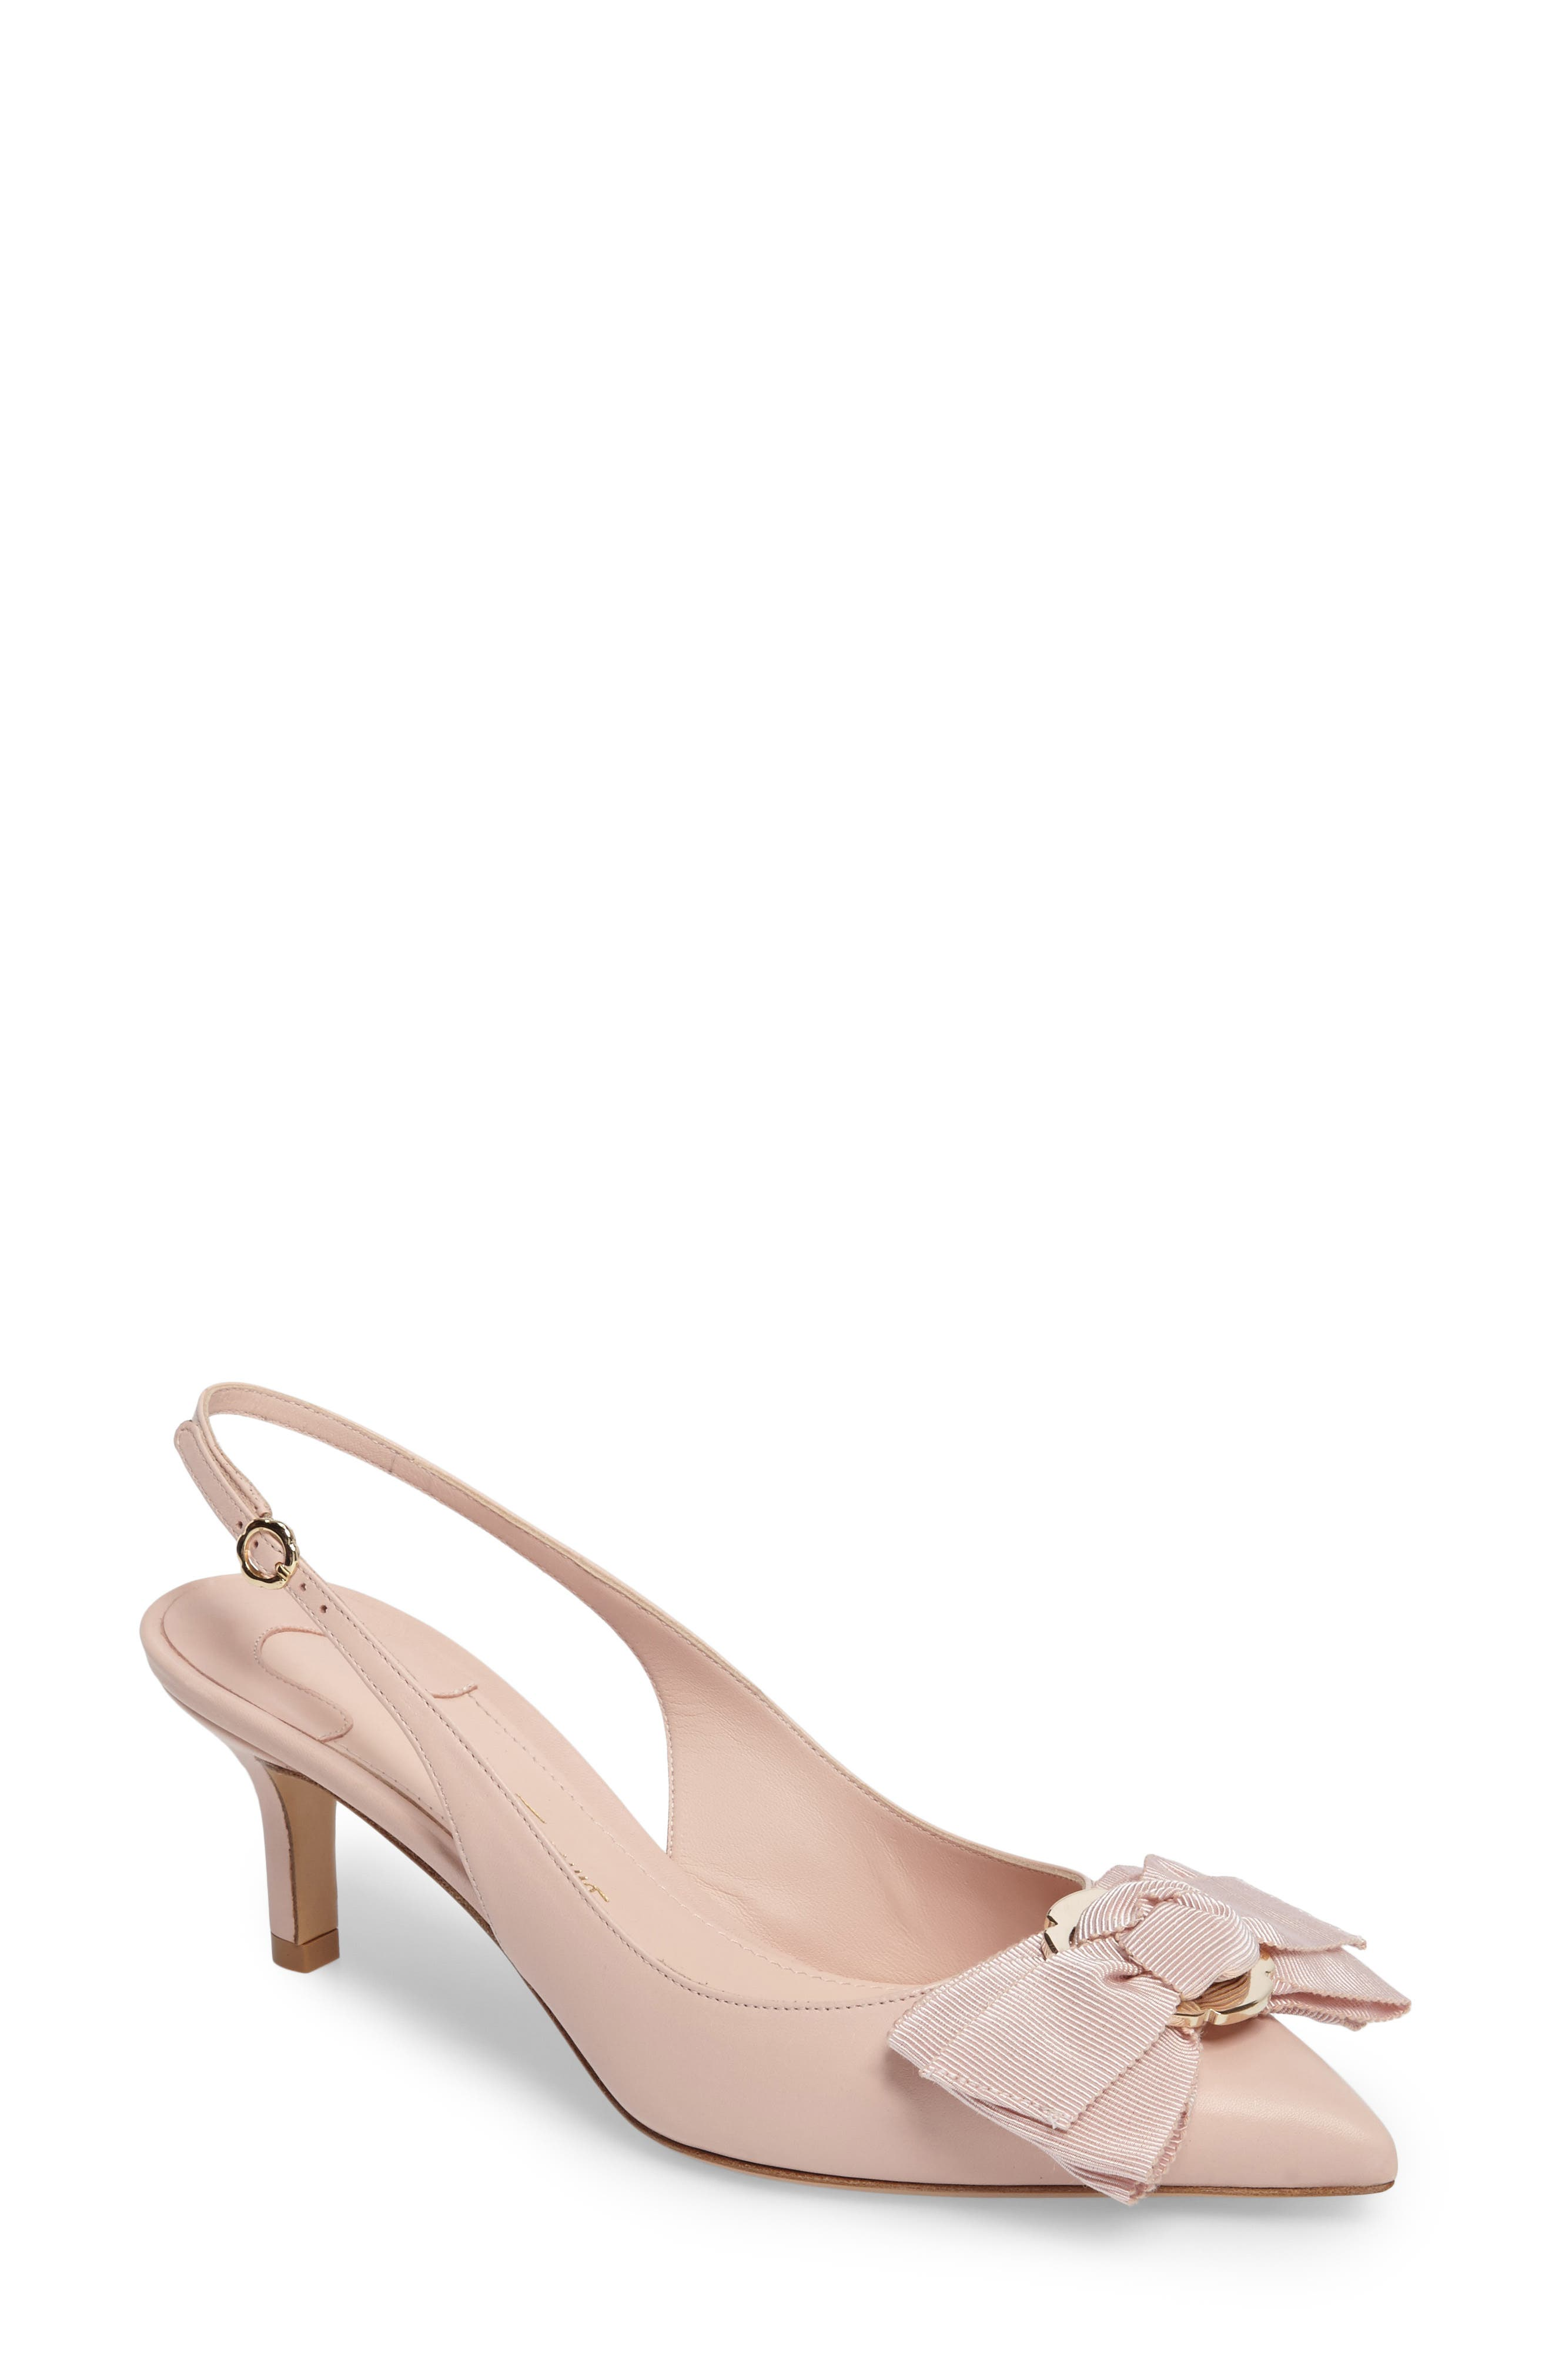 Laterina Slingback Pump,                         Main,                         color,